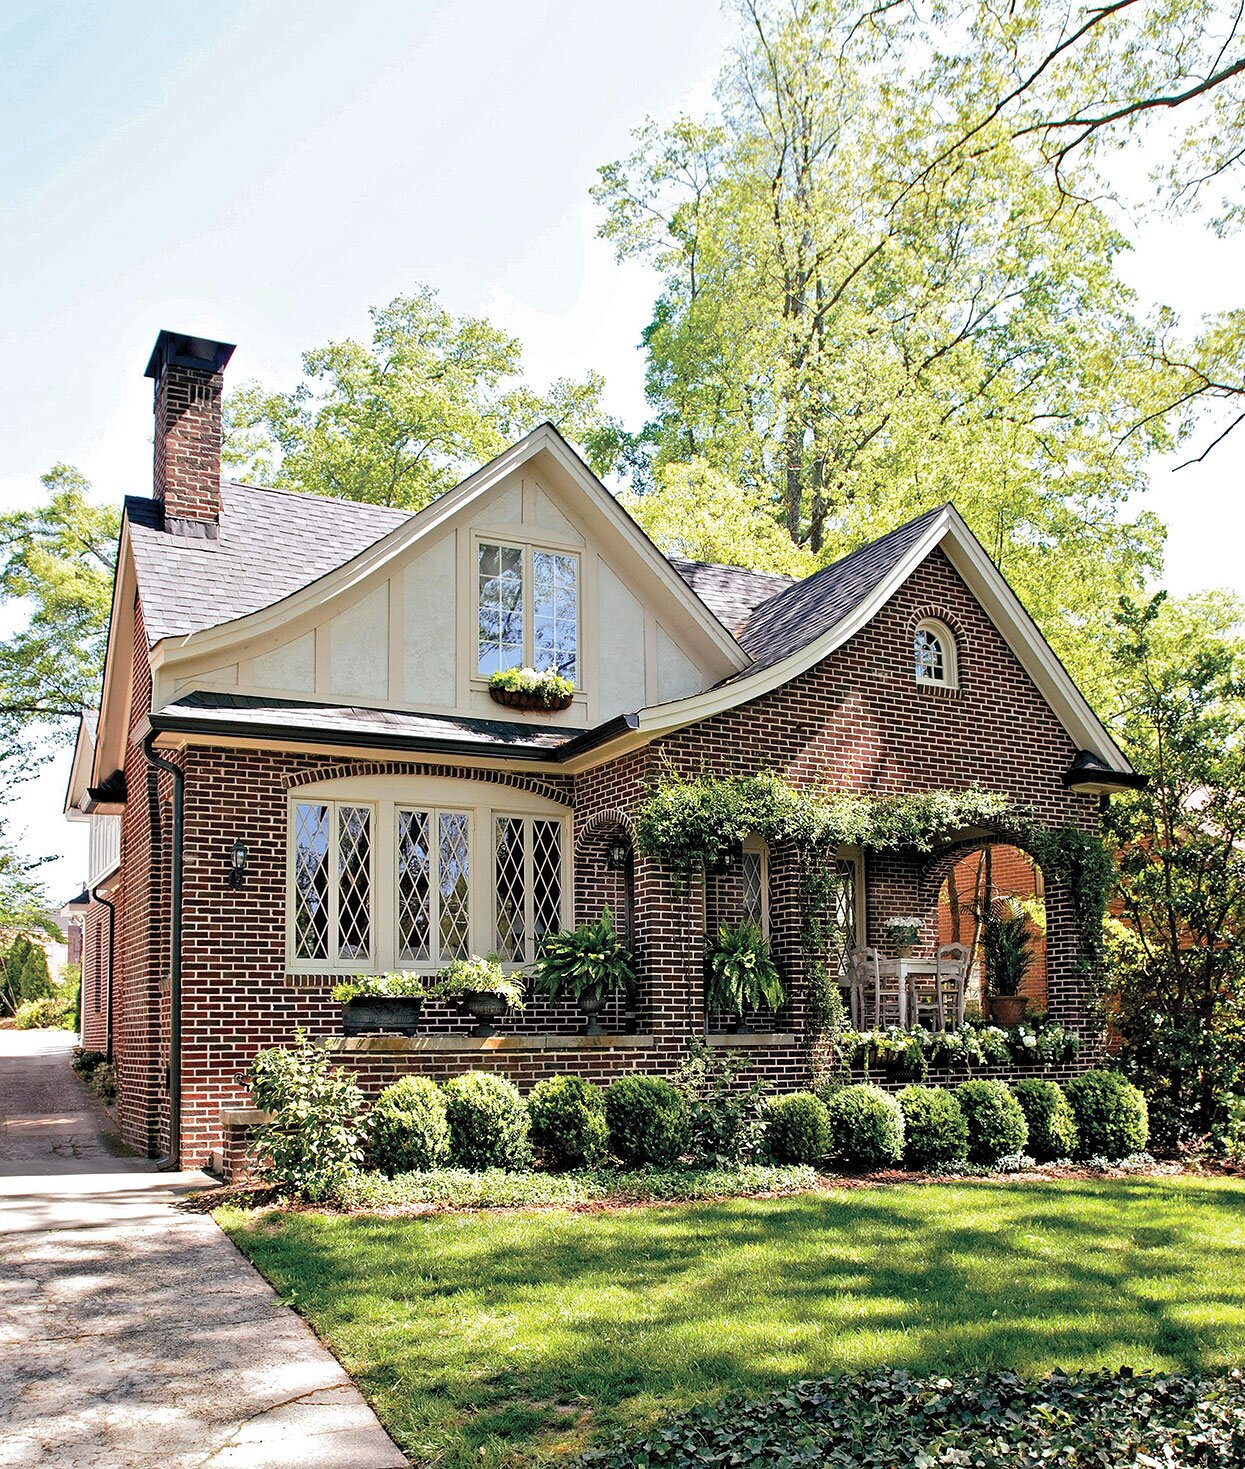 Tudor Style Home Ideas That Bring Old World Style Into The Modern Age Better Homes Gardens